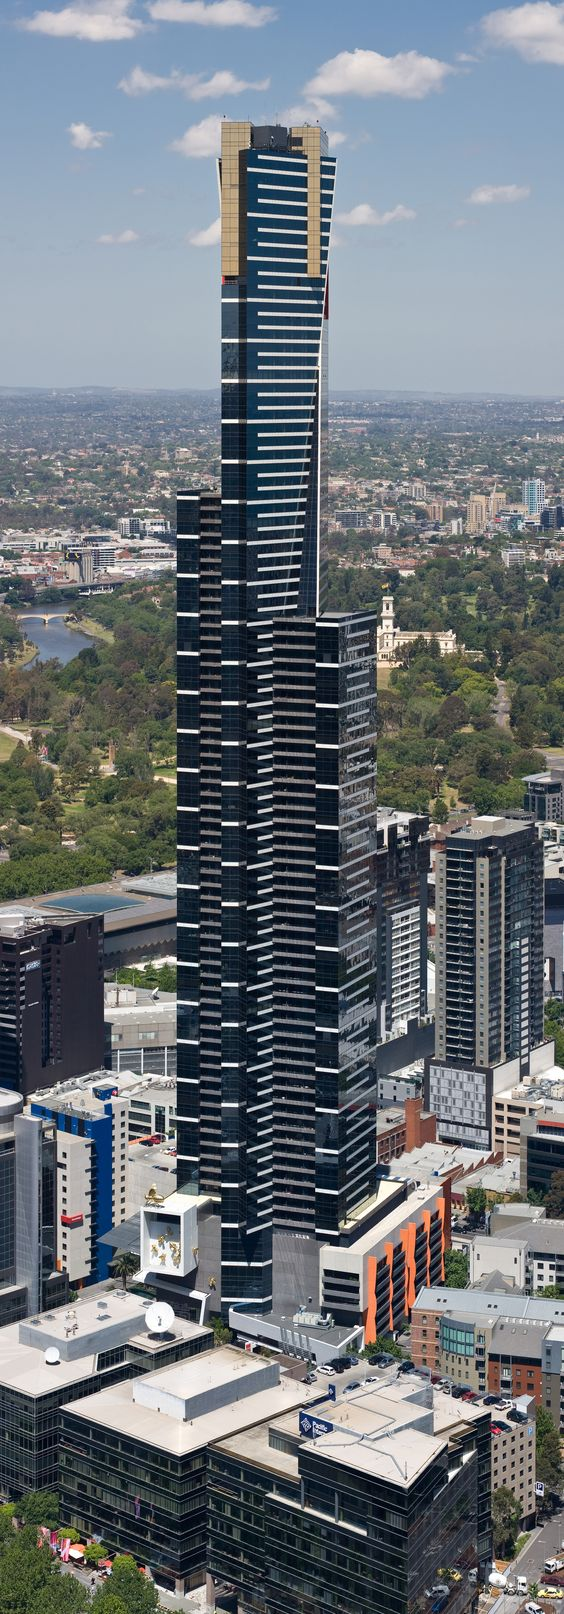 "ArchitectureVisit Eureka Tower (297.3-metre/975 ft) skyscraper located in Melbourne, Victoria, Australia and experience the ""Cube"" Skyscrapers"